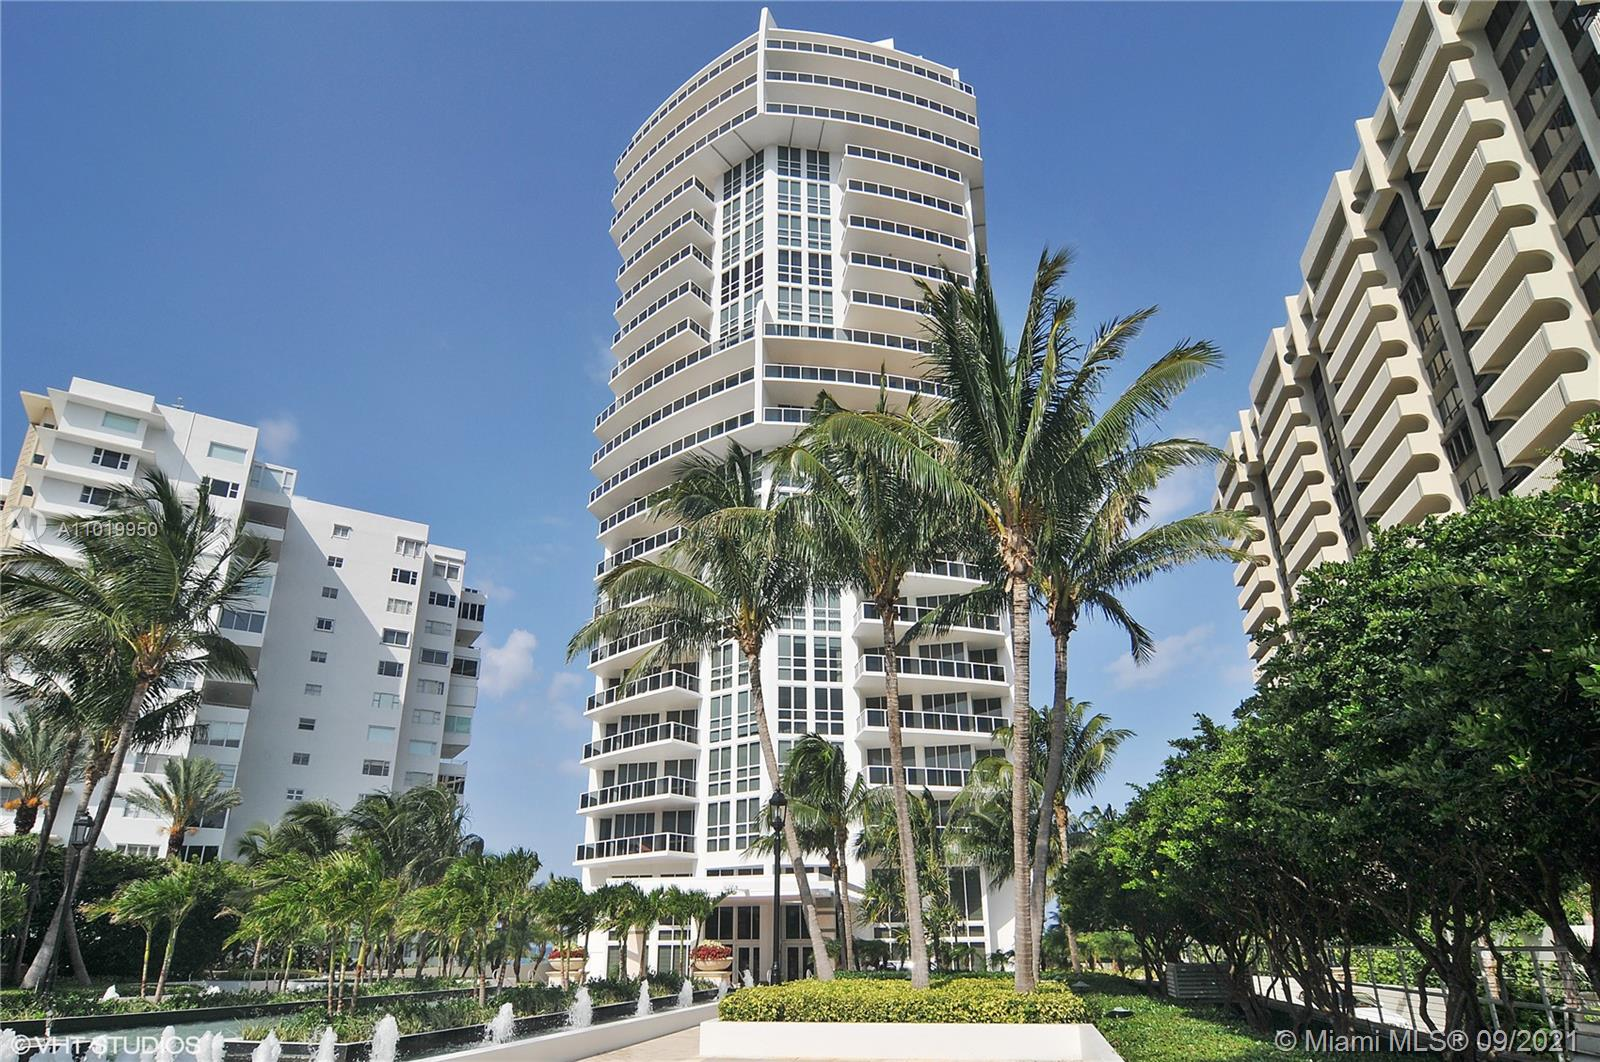 Sought after and stunning Bellini building   THE BELLINI - LUXURIOUS & PRESTIGIOUS IN BAL HARBOUR. ON THE OCEAN WITH OCEAN, BAY AND CITY VIEWS. 4/4 3000 sq ft spacious CORNER Residence WITH PRIVATE ELEVATOR OPENING DIRECTLY INTO YOUR MAGNIFICENT OPEN AREAS WITH HIGH VOLUME CEILINGS. MAGNIFICENT DECOR AND FURNISHINGS. WRAP AROUND TERRACE TO TAKE ADVANTAGE OF BOTH SUNSET AND SUNRISE! ENJOY ALL THE AMENITIES IMAGINABLE. STROLL TO FAMOUS BAL HARBOUR SHOPS AND FINE DINING. AlSO AVAILABLE FOR 6 MONTH LEASE FURNISHED OR UNFURNISHED. Owner ready to make a deal. Excellent opportunity. For sale $2.3 Million